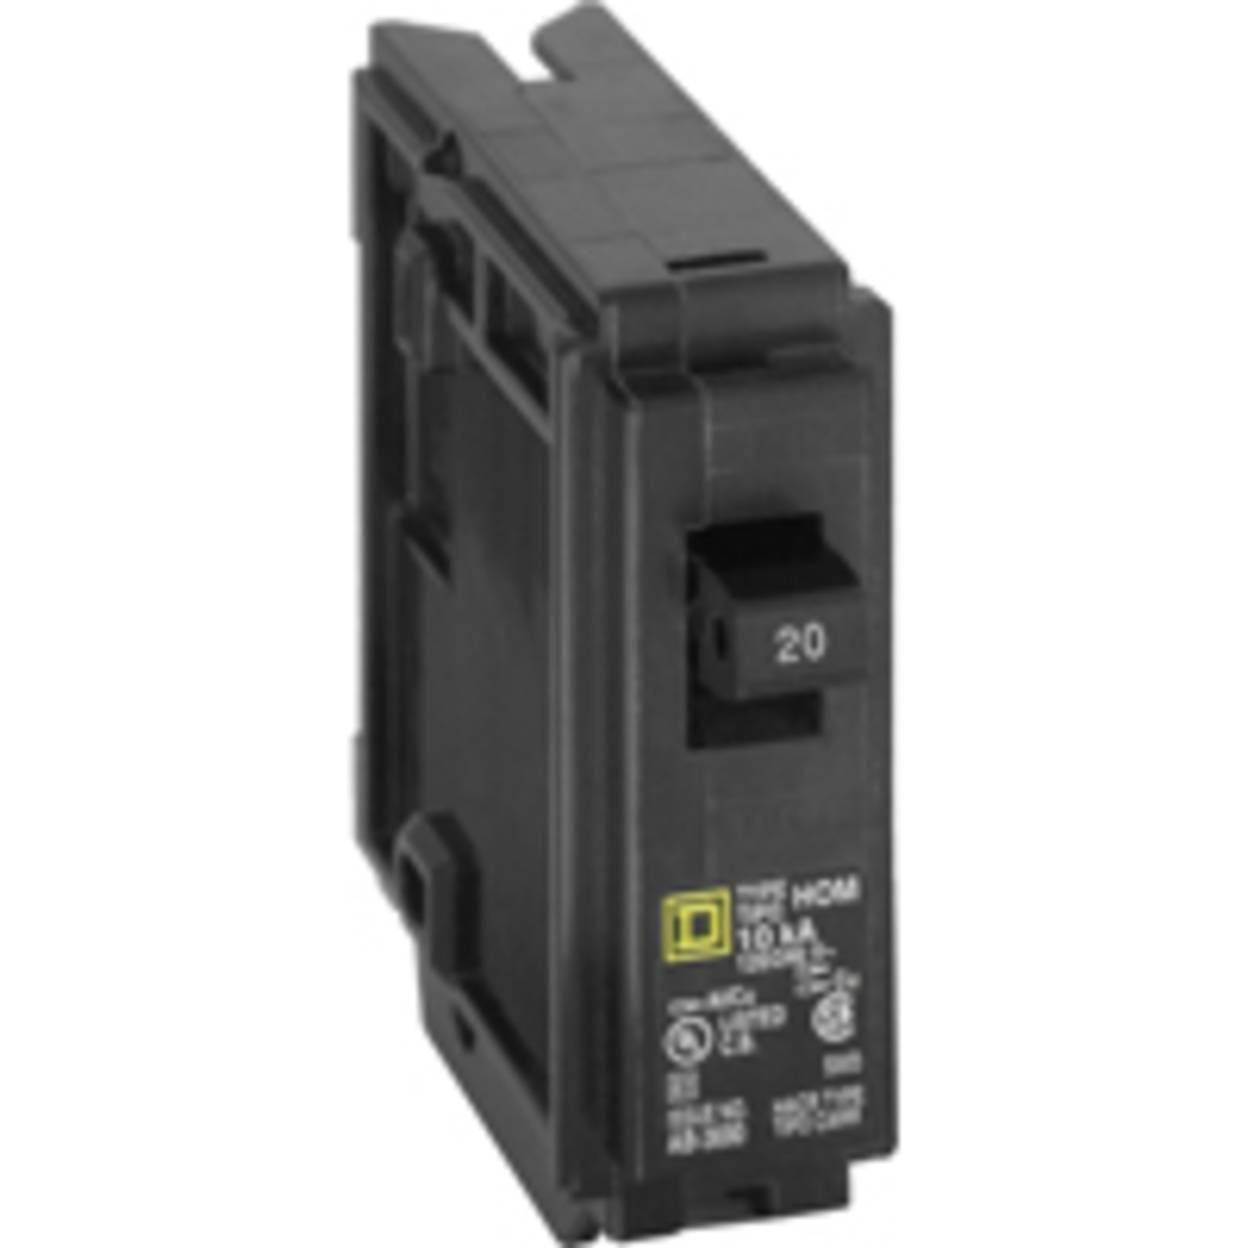 Square D Homeline Single Pole Circuit Breaker - 20amp